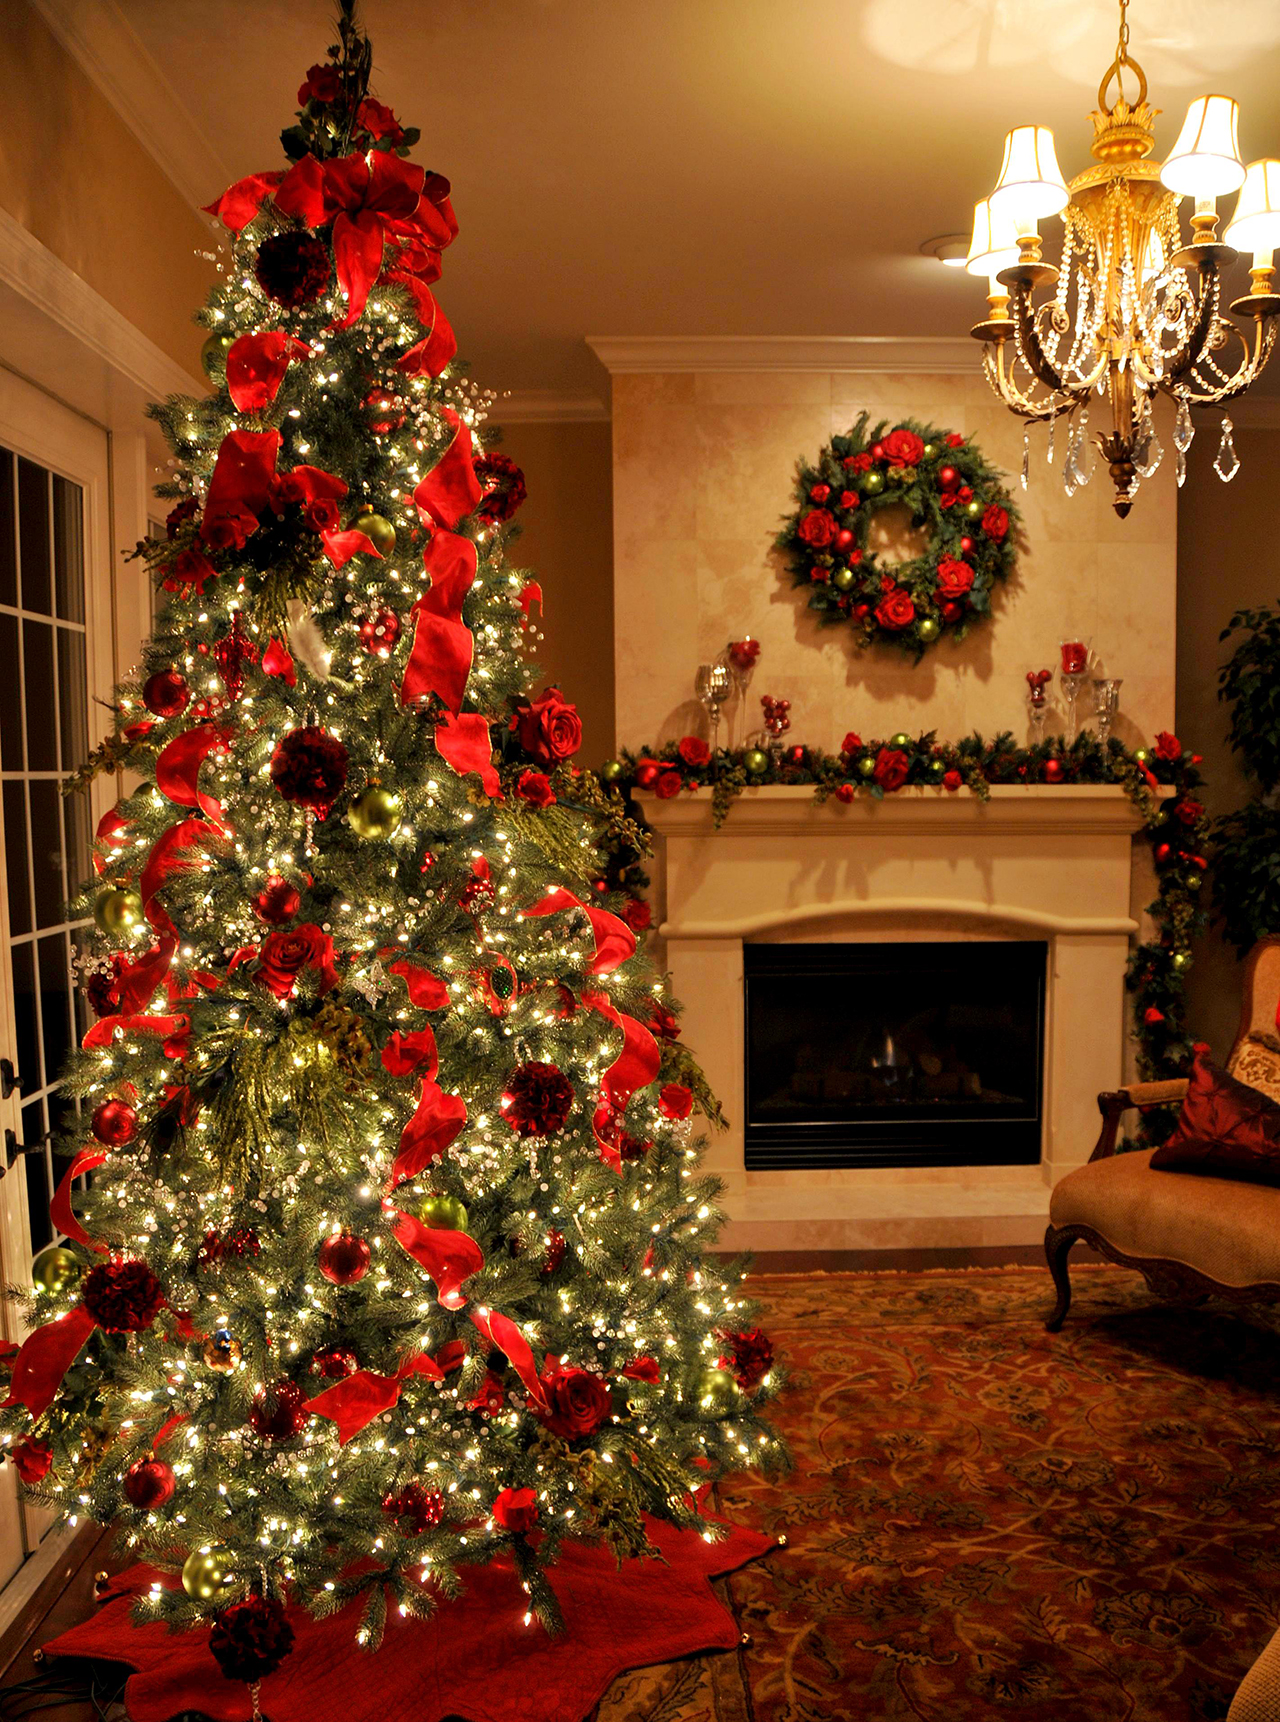 romantic roses source decoratingpartycom red is a basic staple for traditional christmas tree decorating